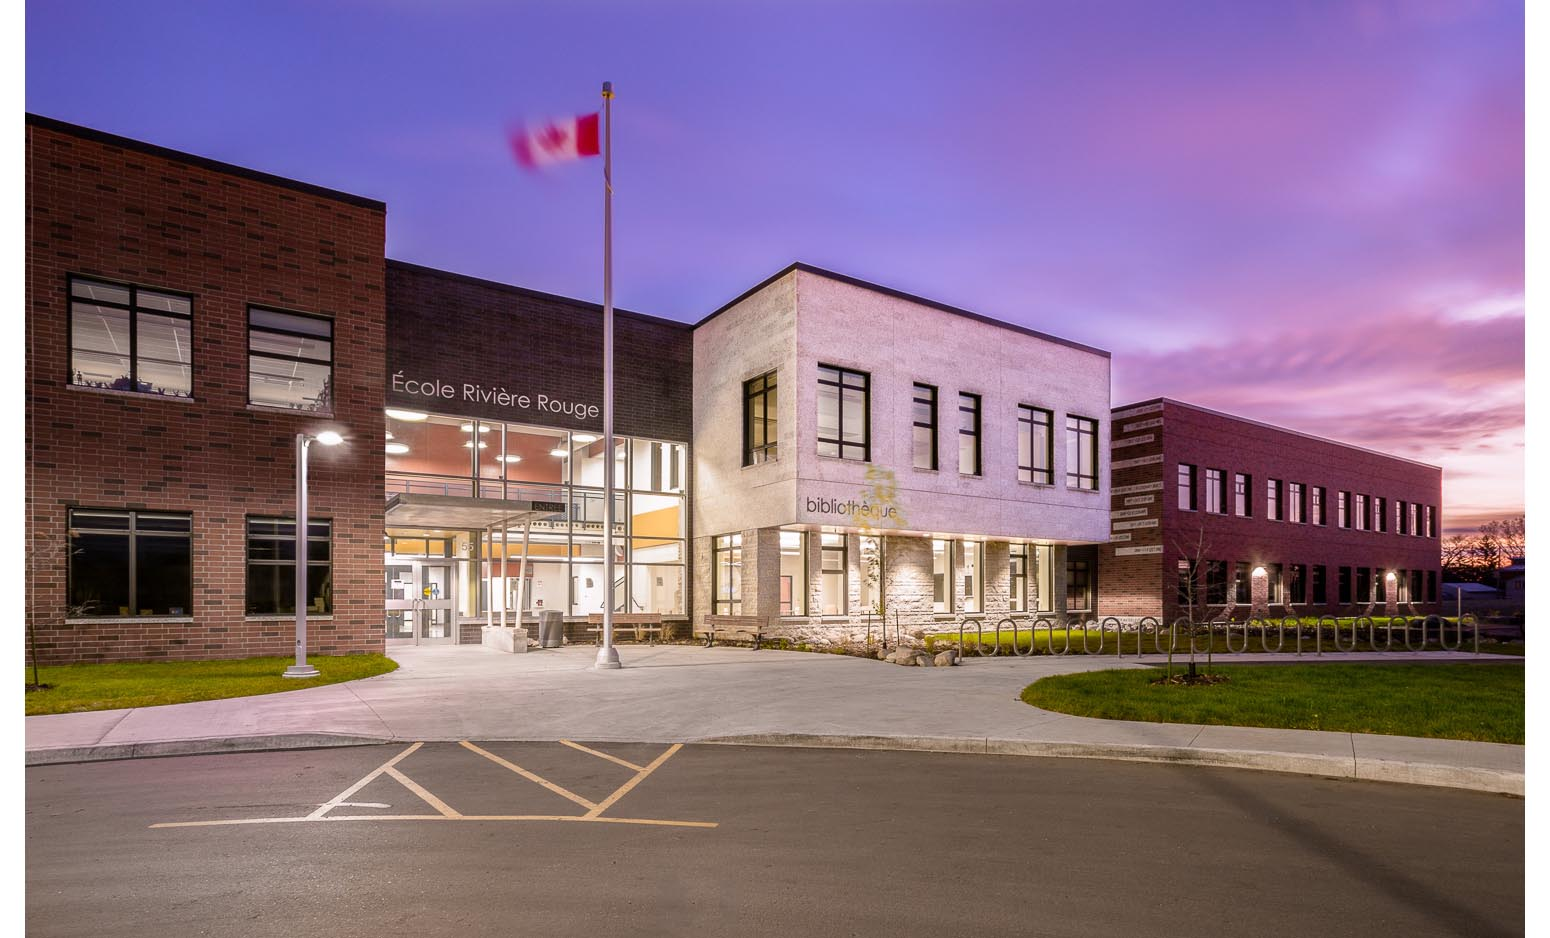 Ecole Rivière Rouge Elementary, exterior photo of school at sunrise / Photo:  Lindsay Reid